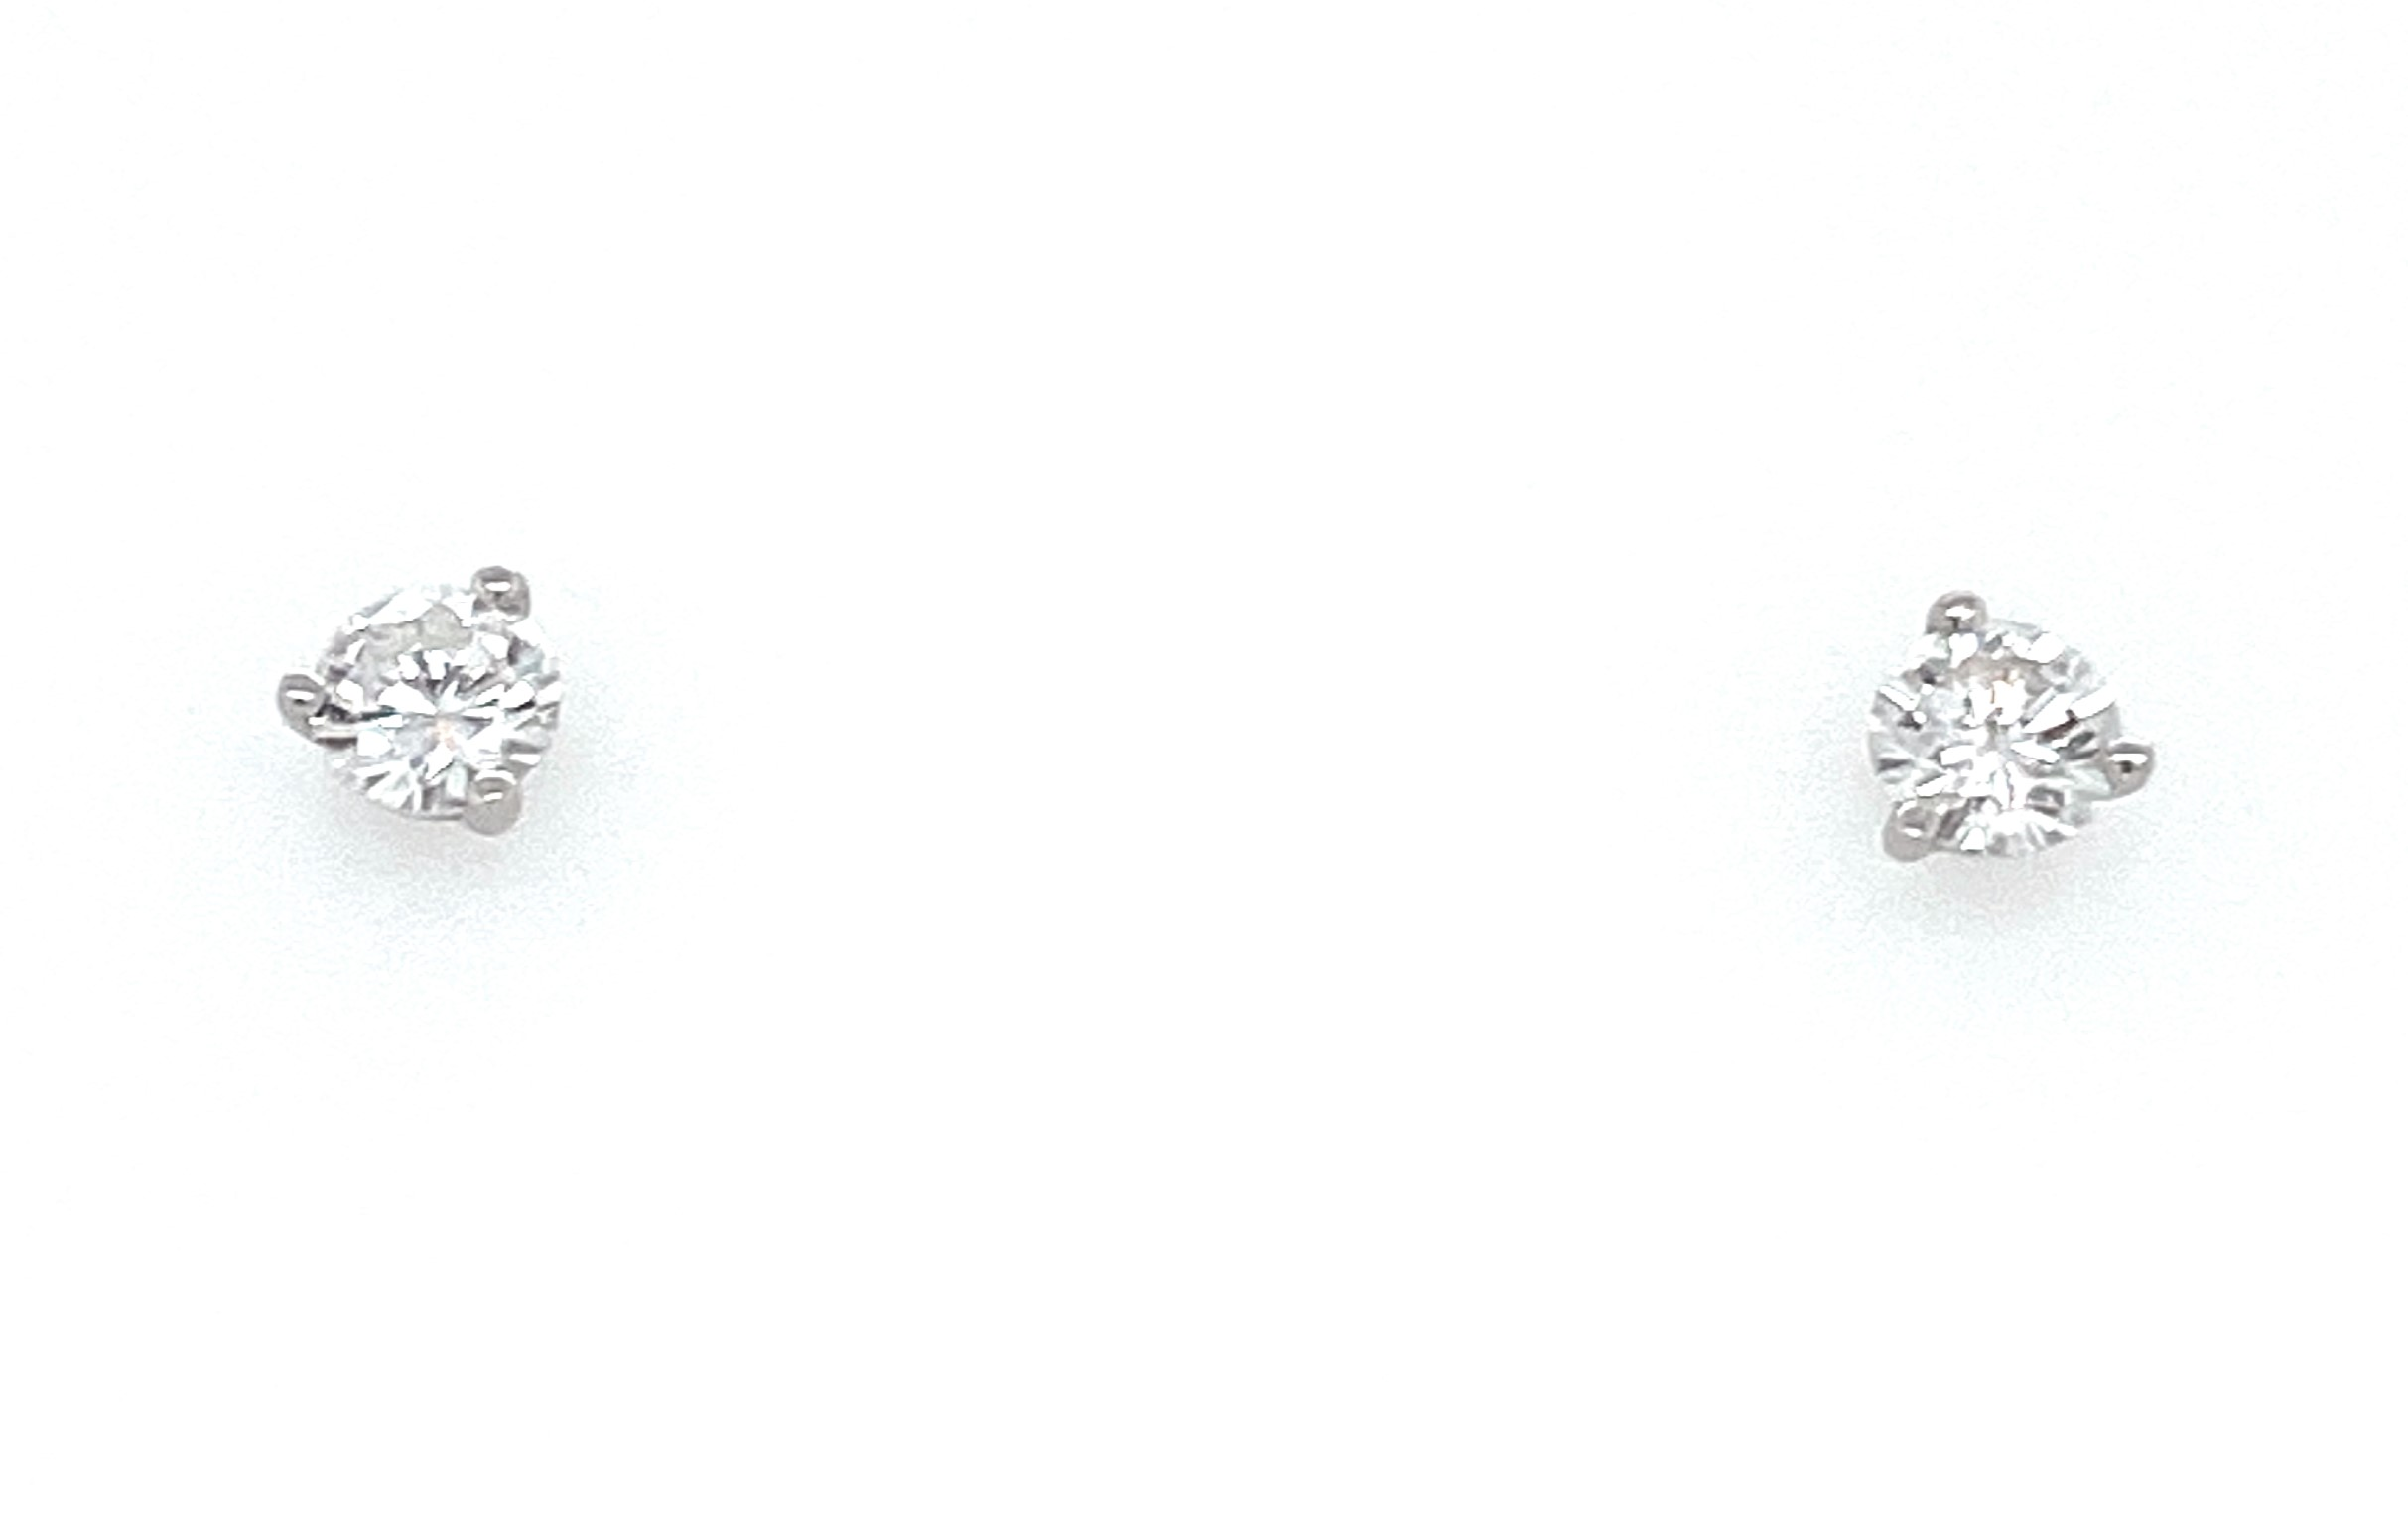 Diamond Stud Earrings - Ladies 14 karat white gold high polished diamond april birthstone stud earrings.  These earrings feature two 3-prong set round brilliant cut diamonds.  The diamonds are G-H color,  I1 clarity and weigh 0.50 ct.  The earrings have friction posts and backs and weigh 0.60 grams.